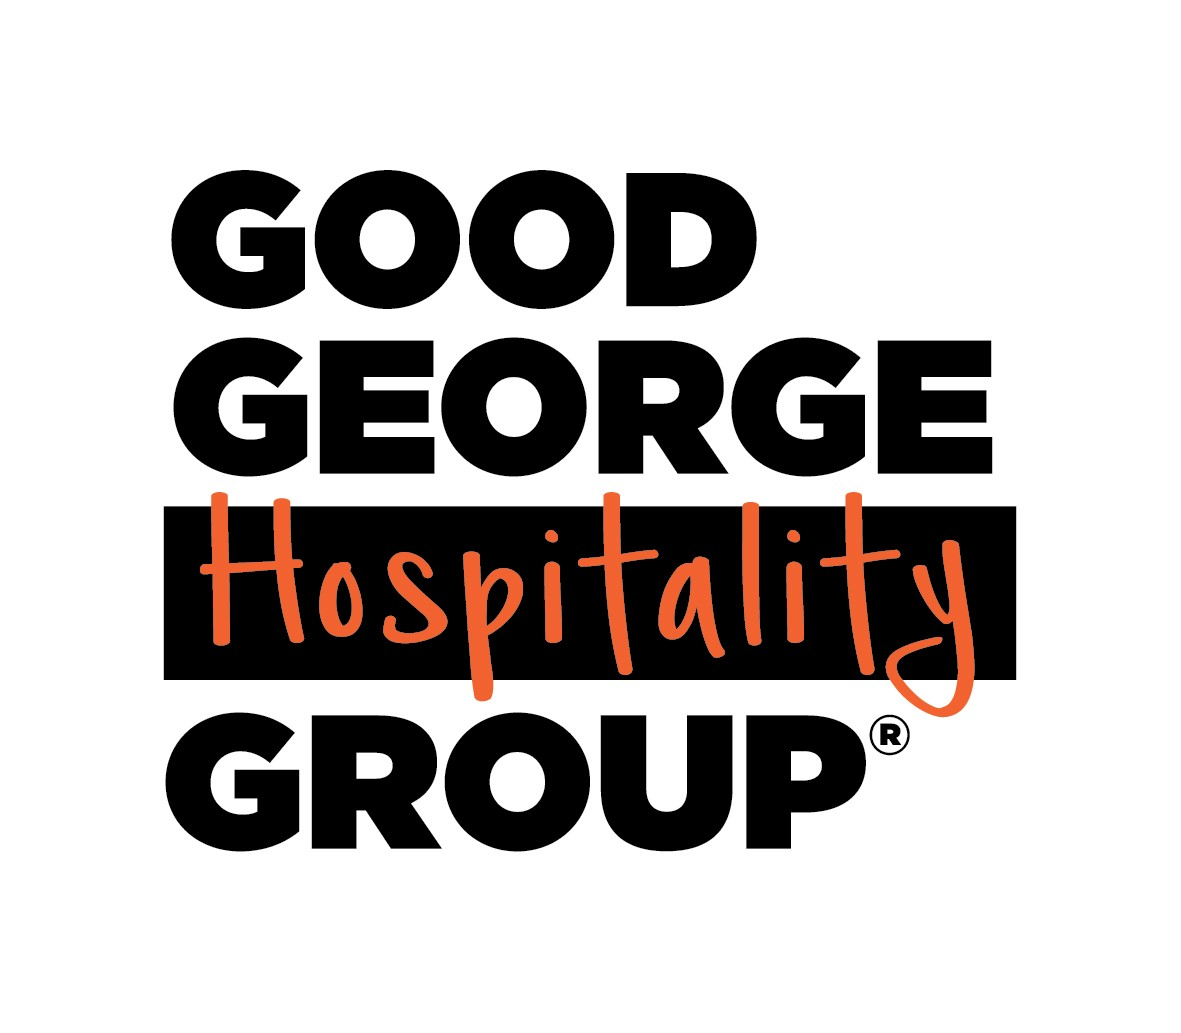 Good George Hospitality Group, Hamilton NZ